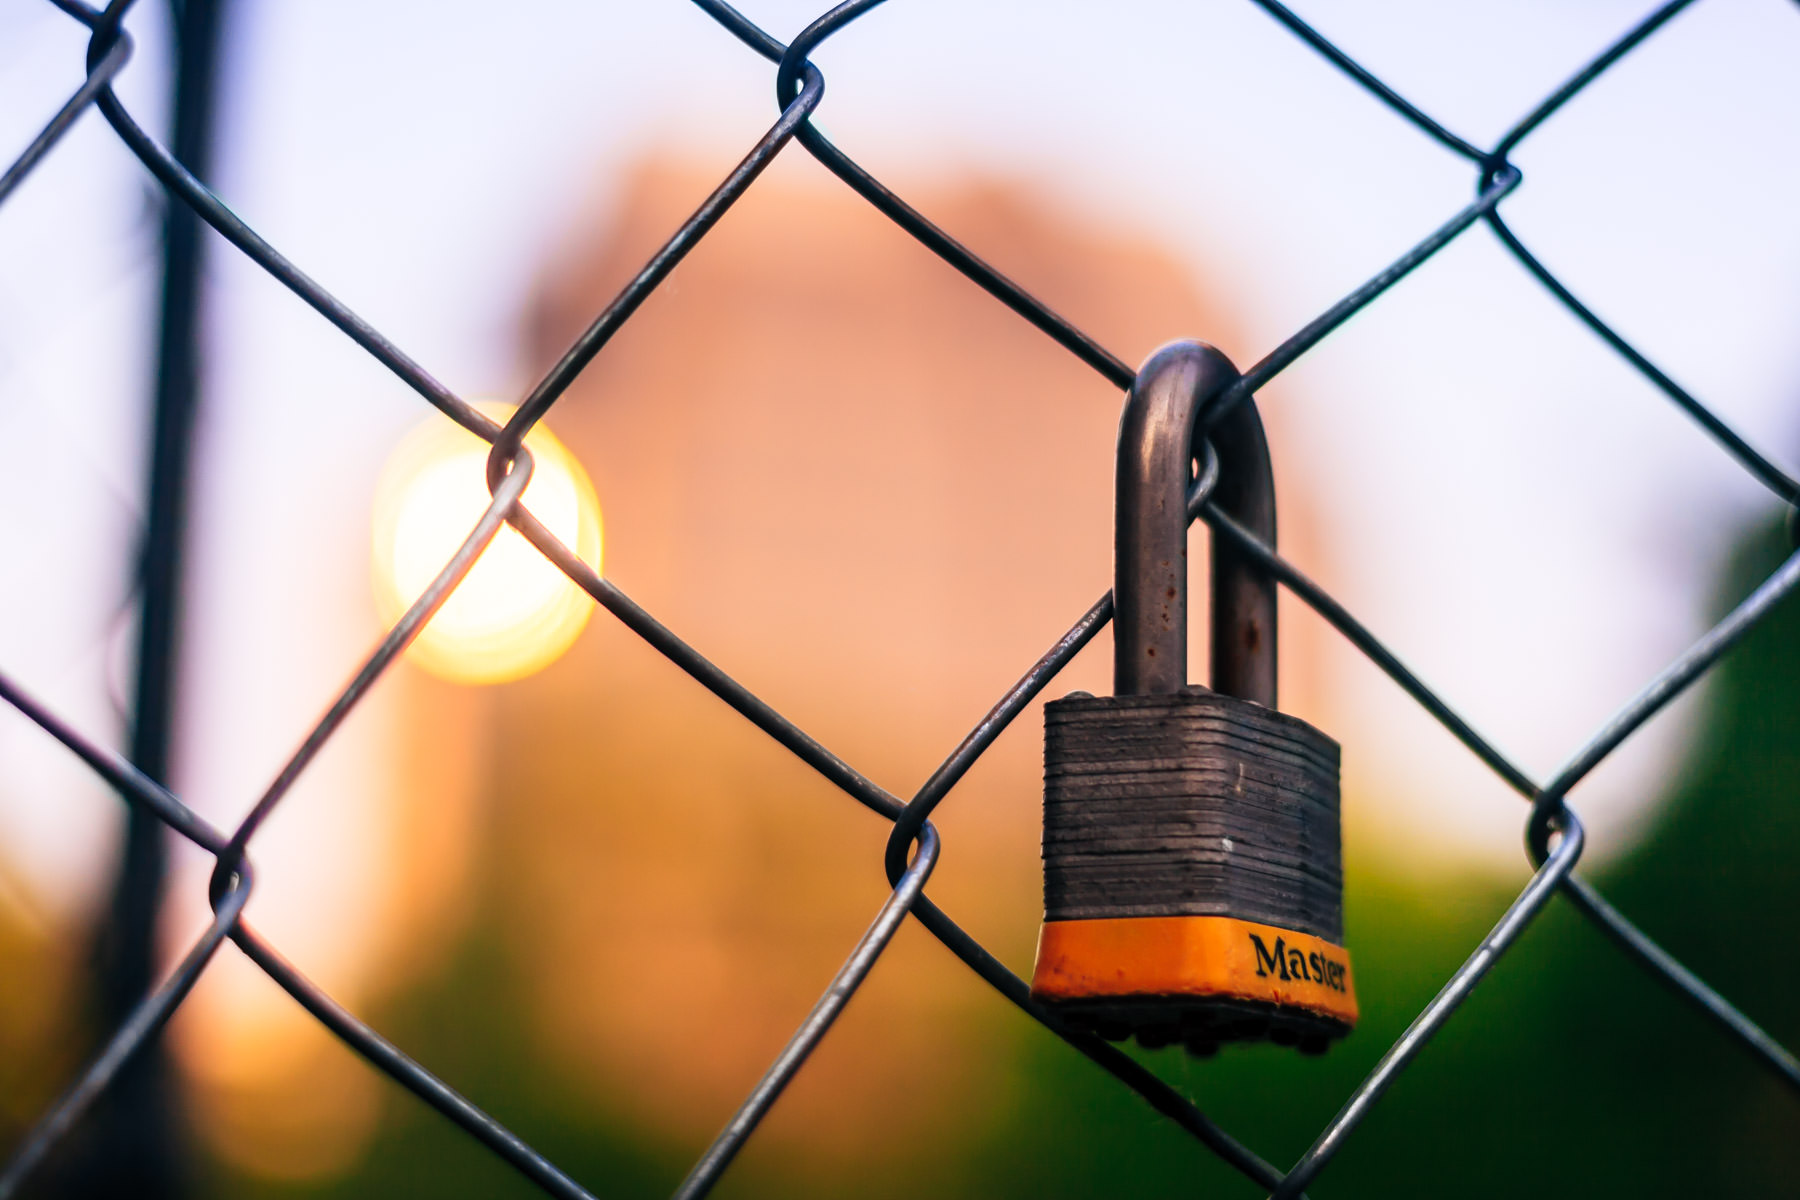 A forgotten padlock hangs from a fence in Uptown Dallas as the early morning sunlight glints off a distant building in the background.